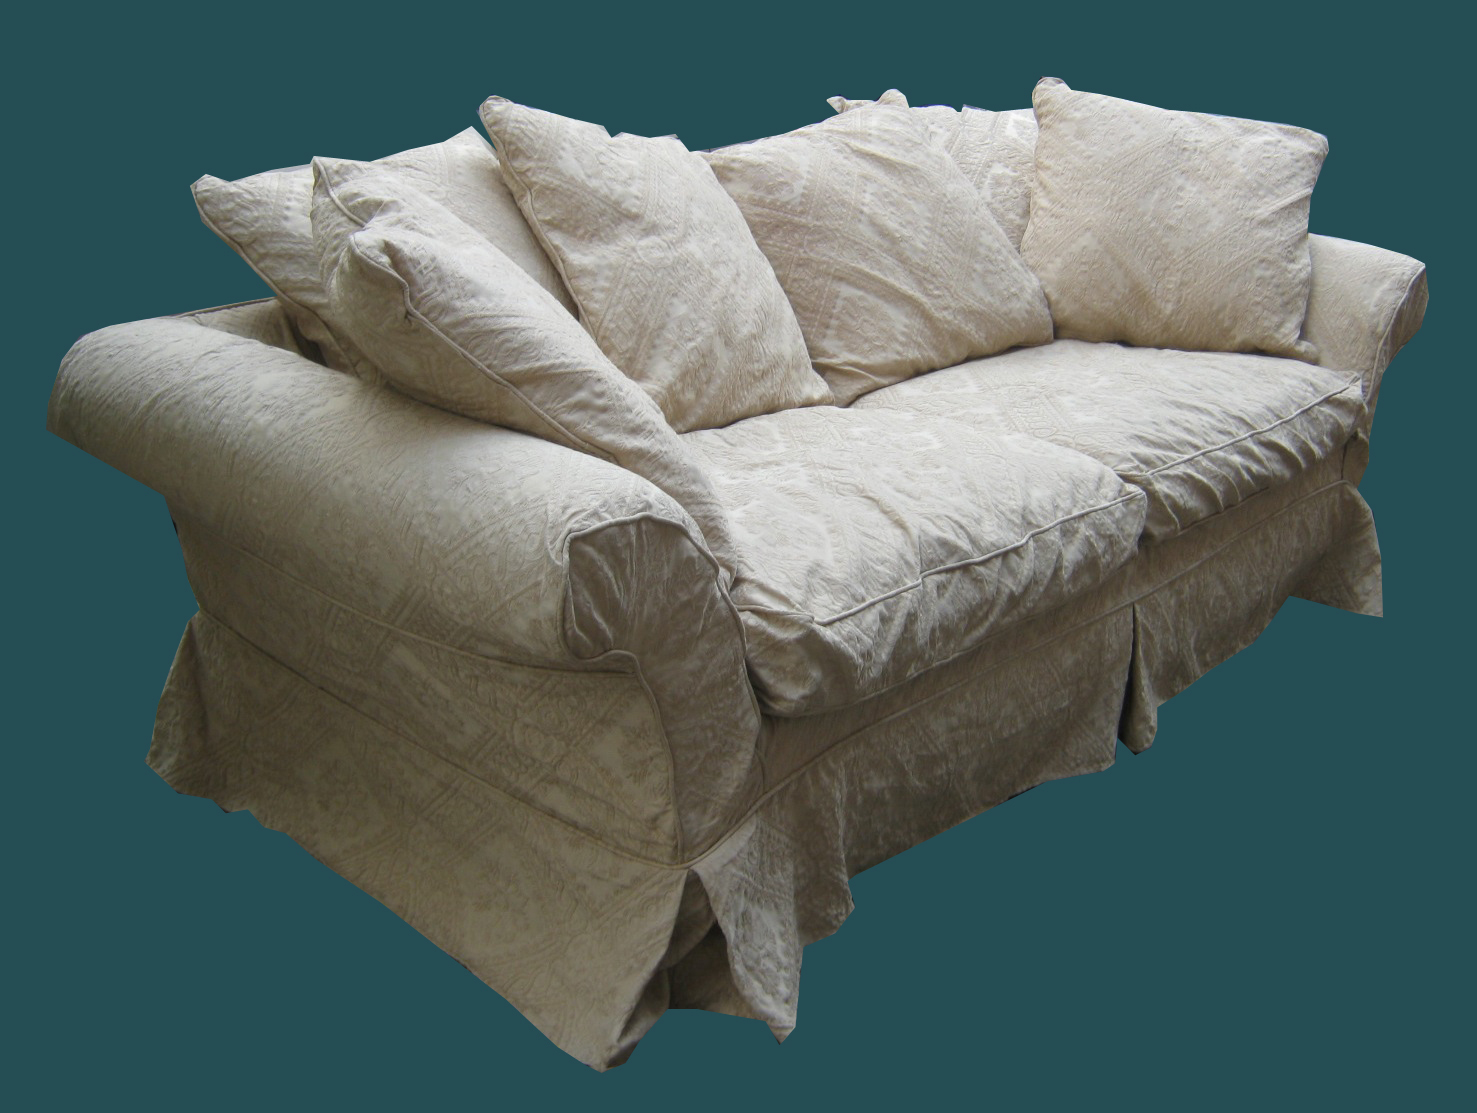 Uhuru Furniture Collectibles Shabby Chic Slipcovered Sleeper Sofa Sold